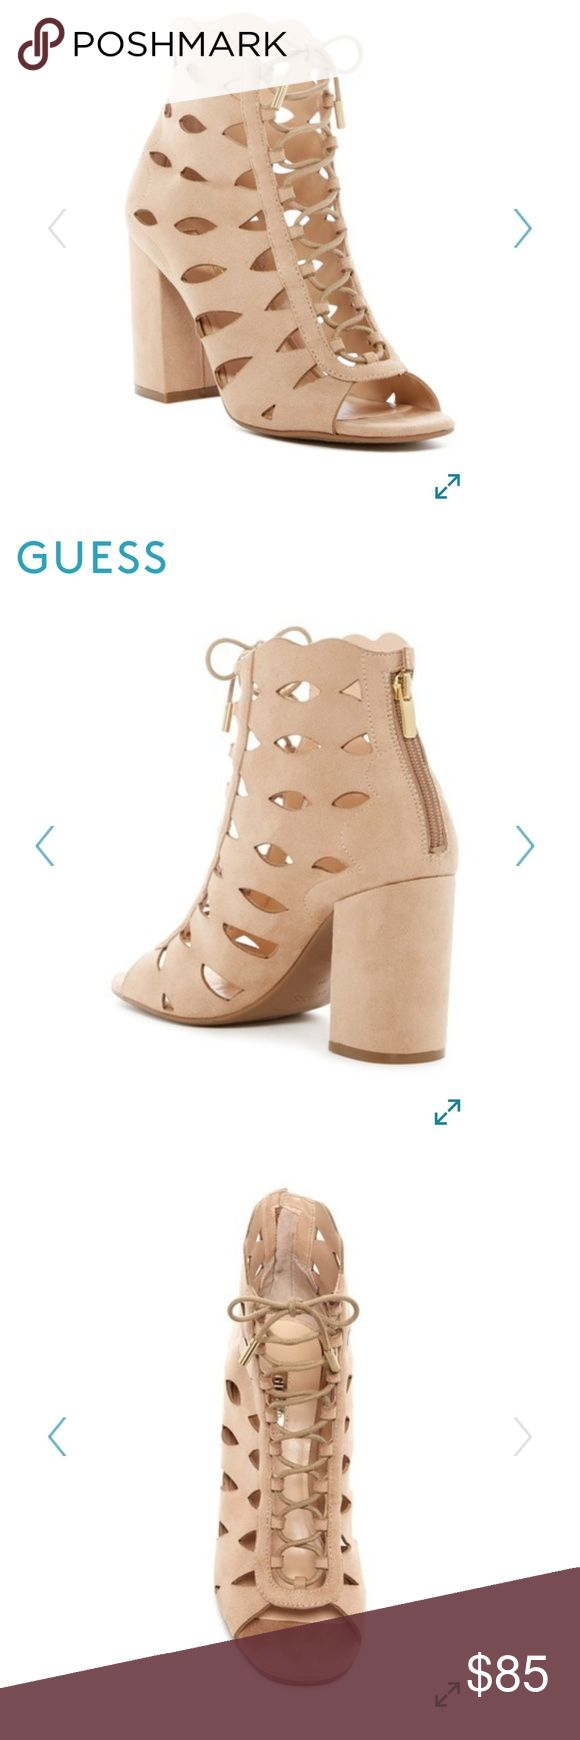 🌟COMING SOON!🌟 NWT Guess cutout lace up sandal in beige/stone! Also available in cognac/brown in a separate listing Guess Shoes